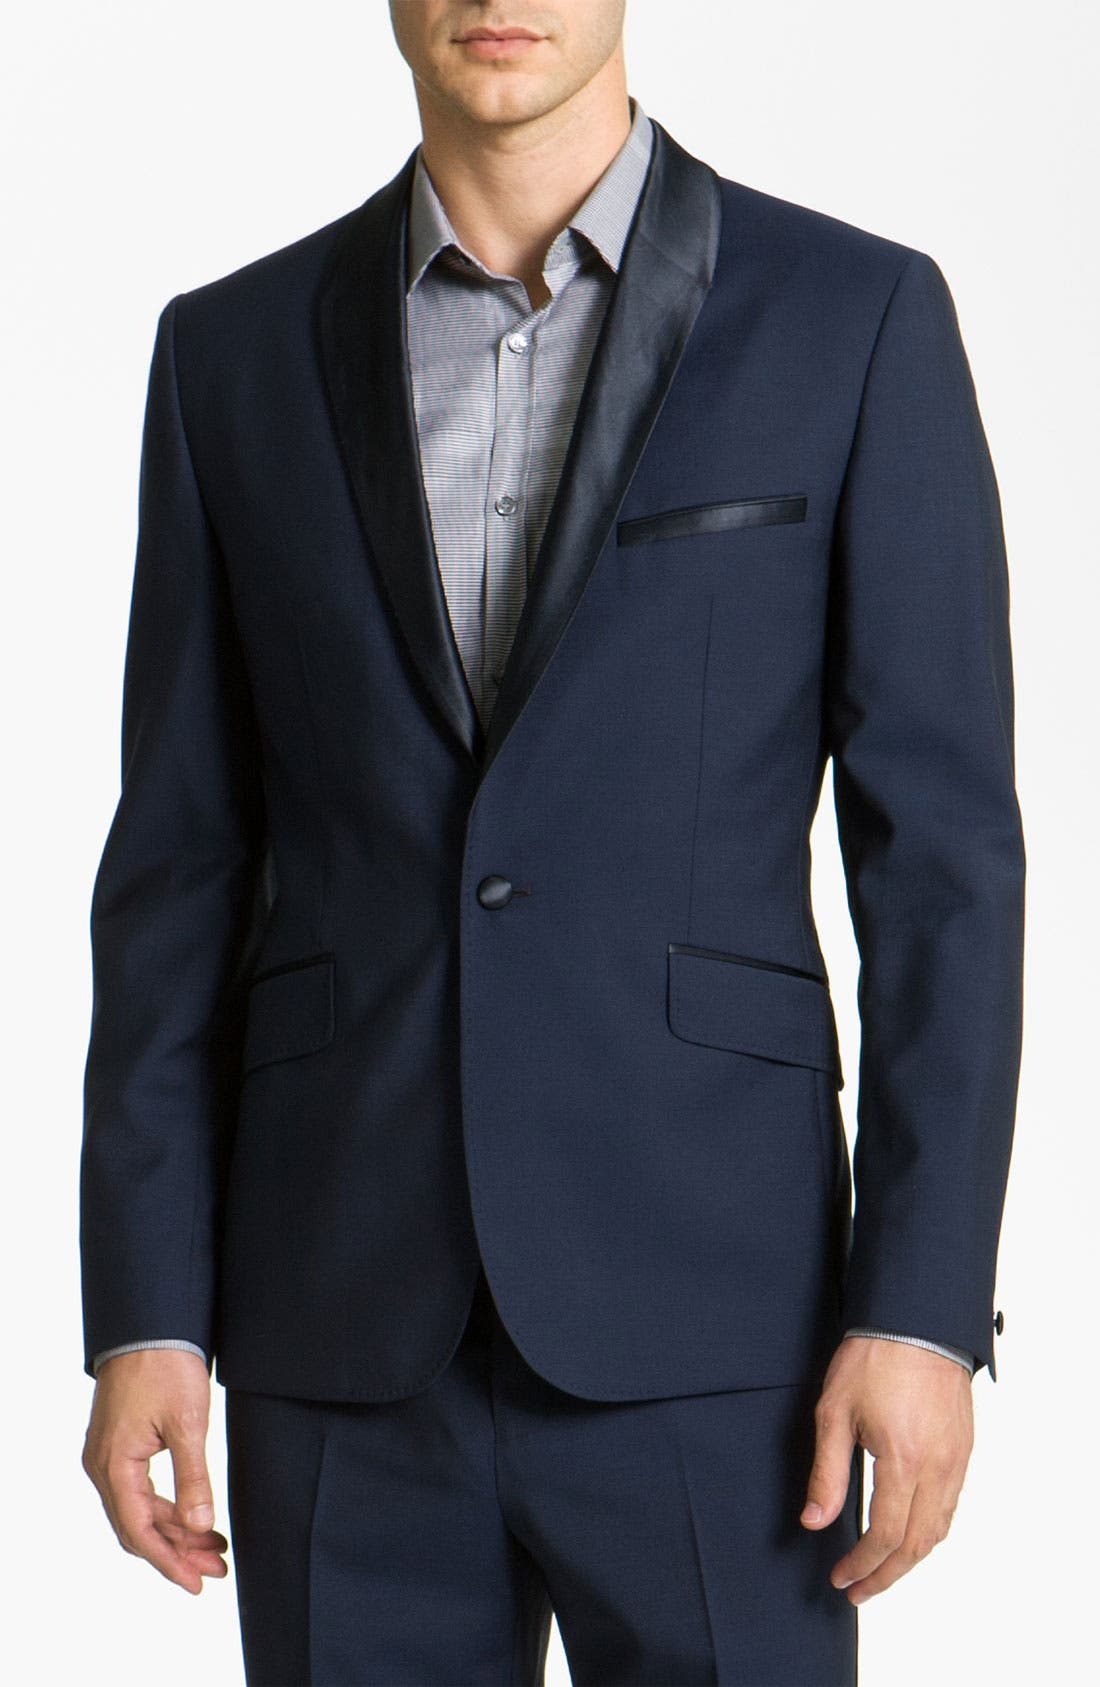 Alternate Image 1 Selected - Ted Baker London Trim Fit Shawl Lapel Tuxedo